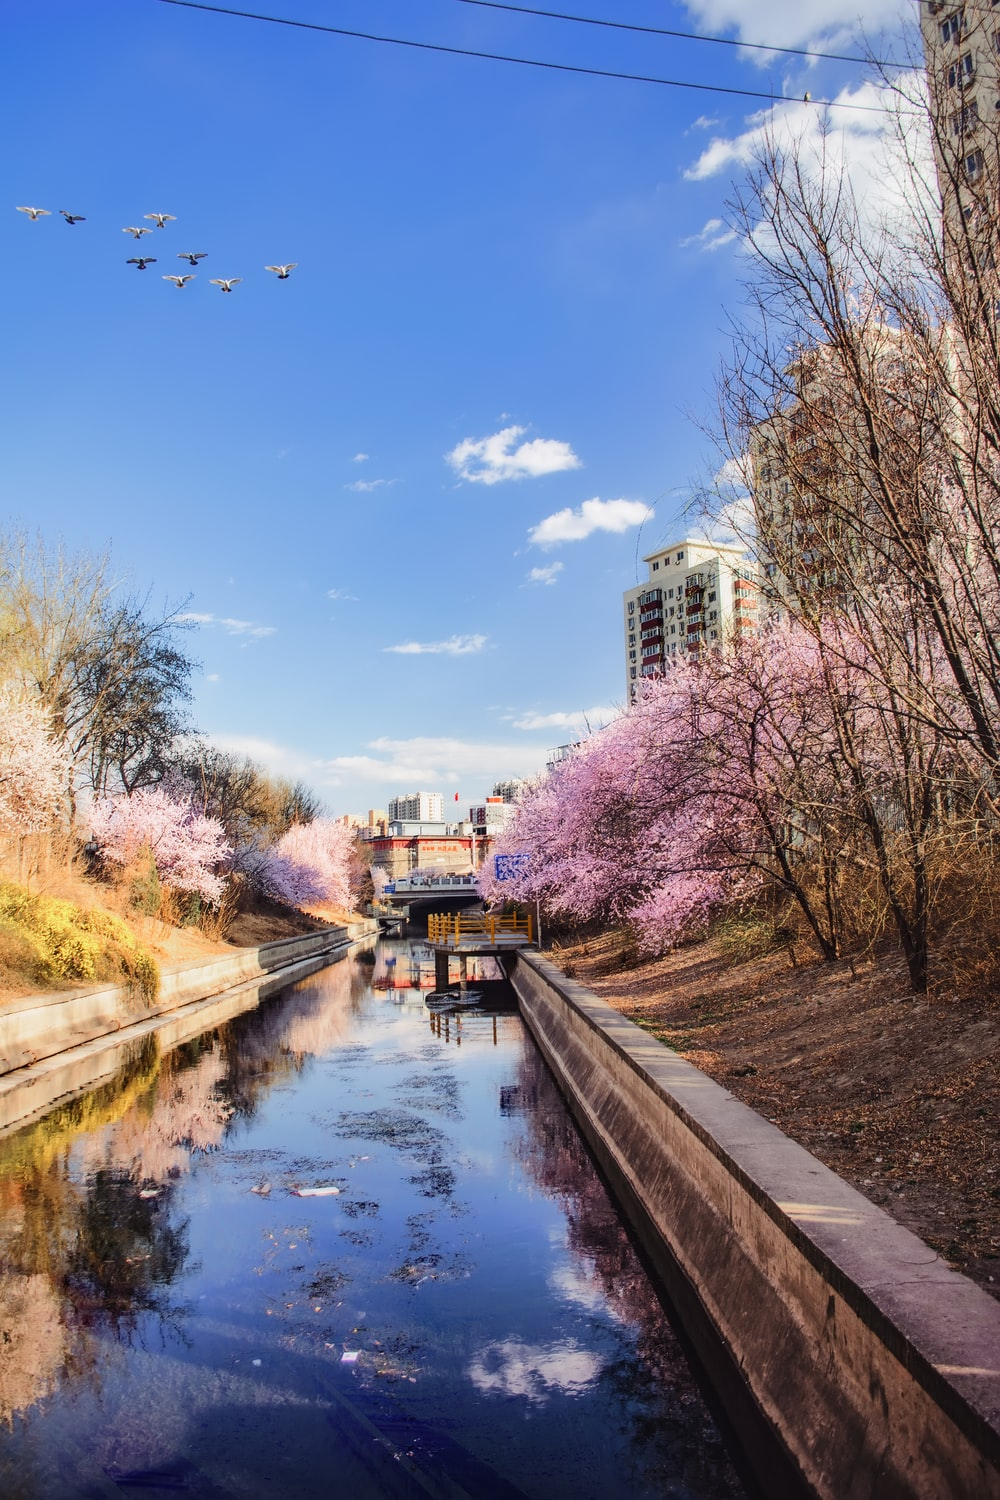 pink cherry blossom beside canal during day time